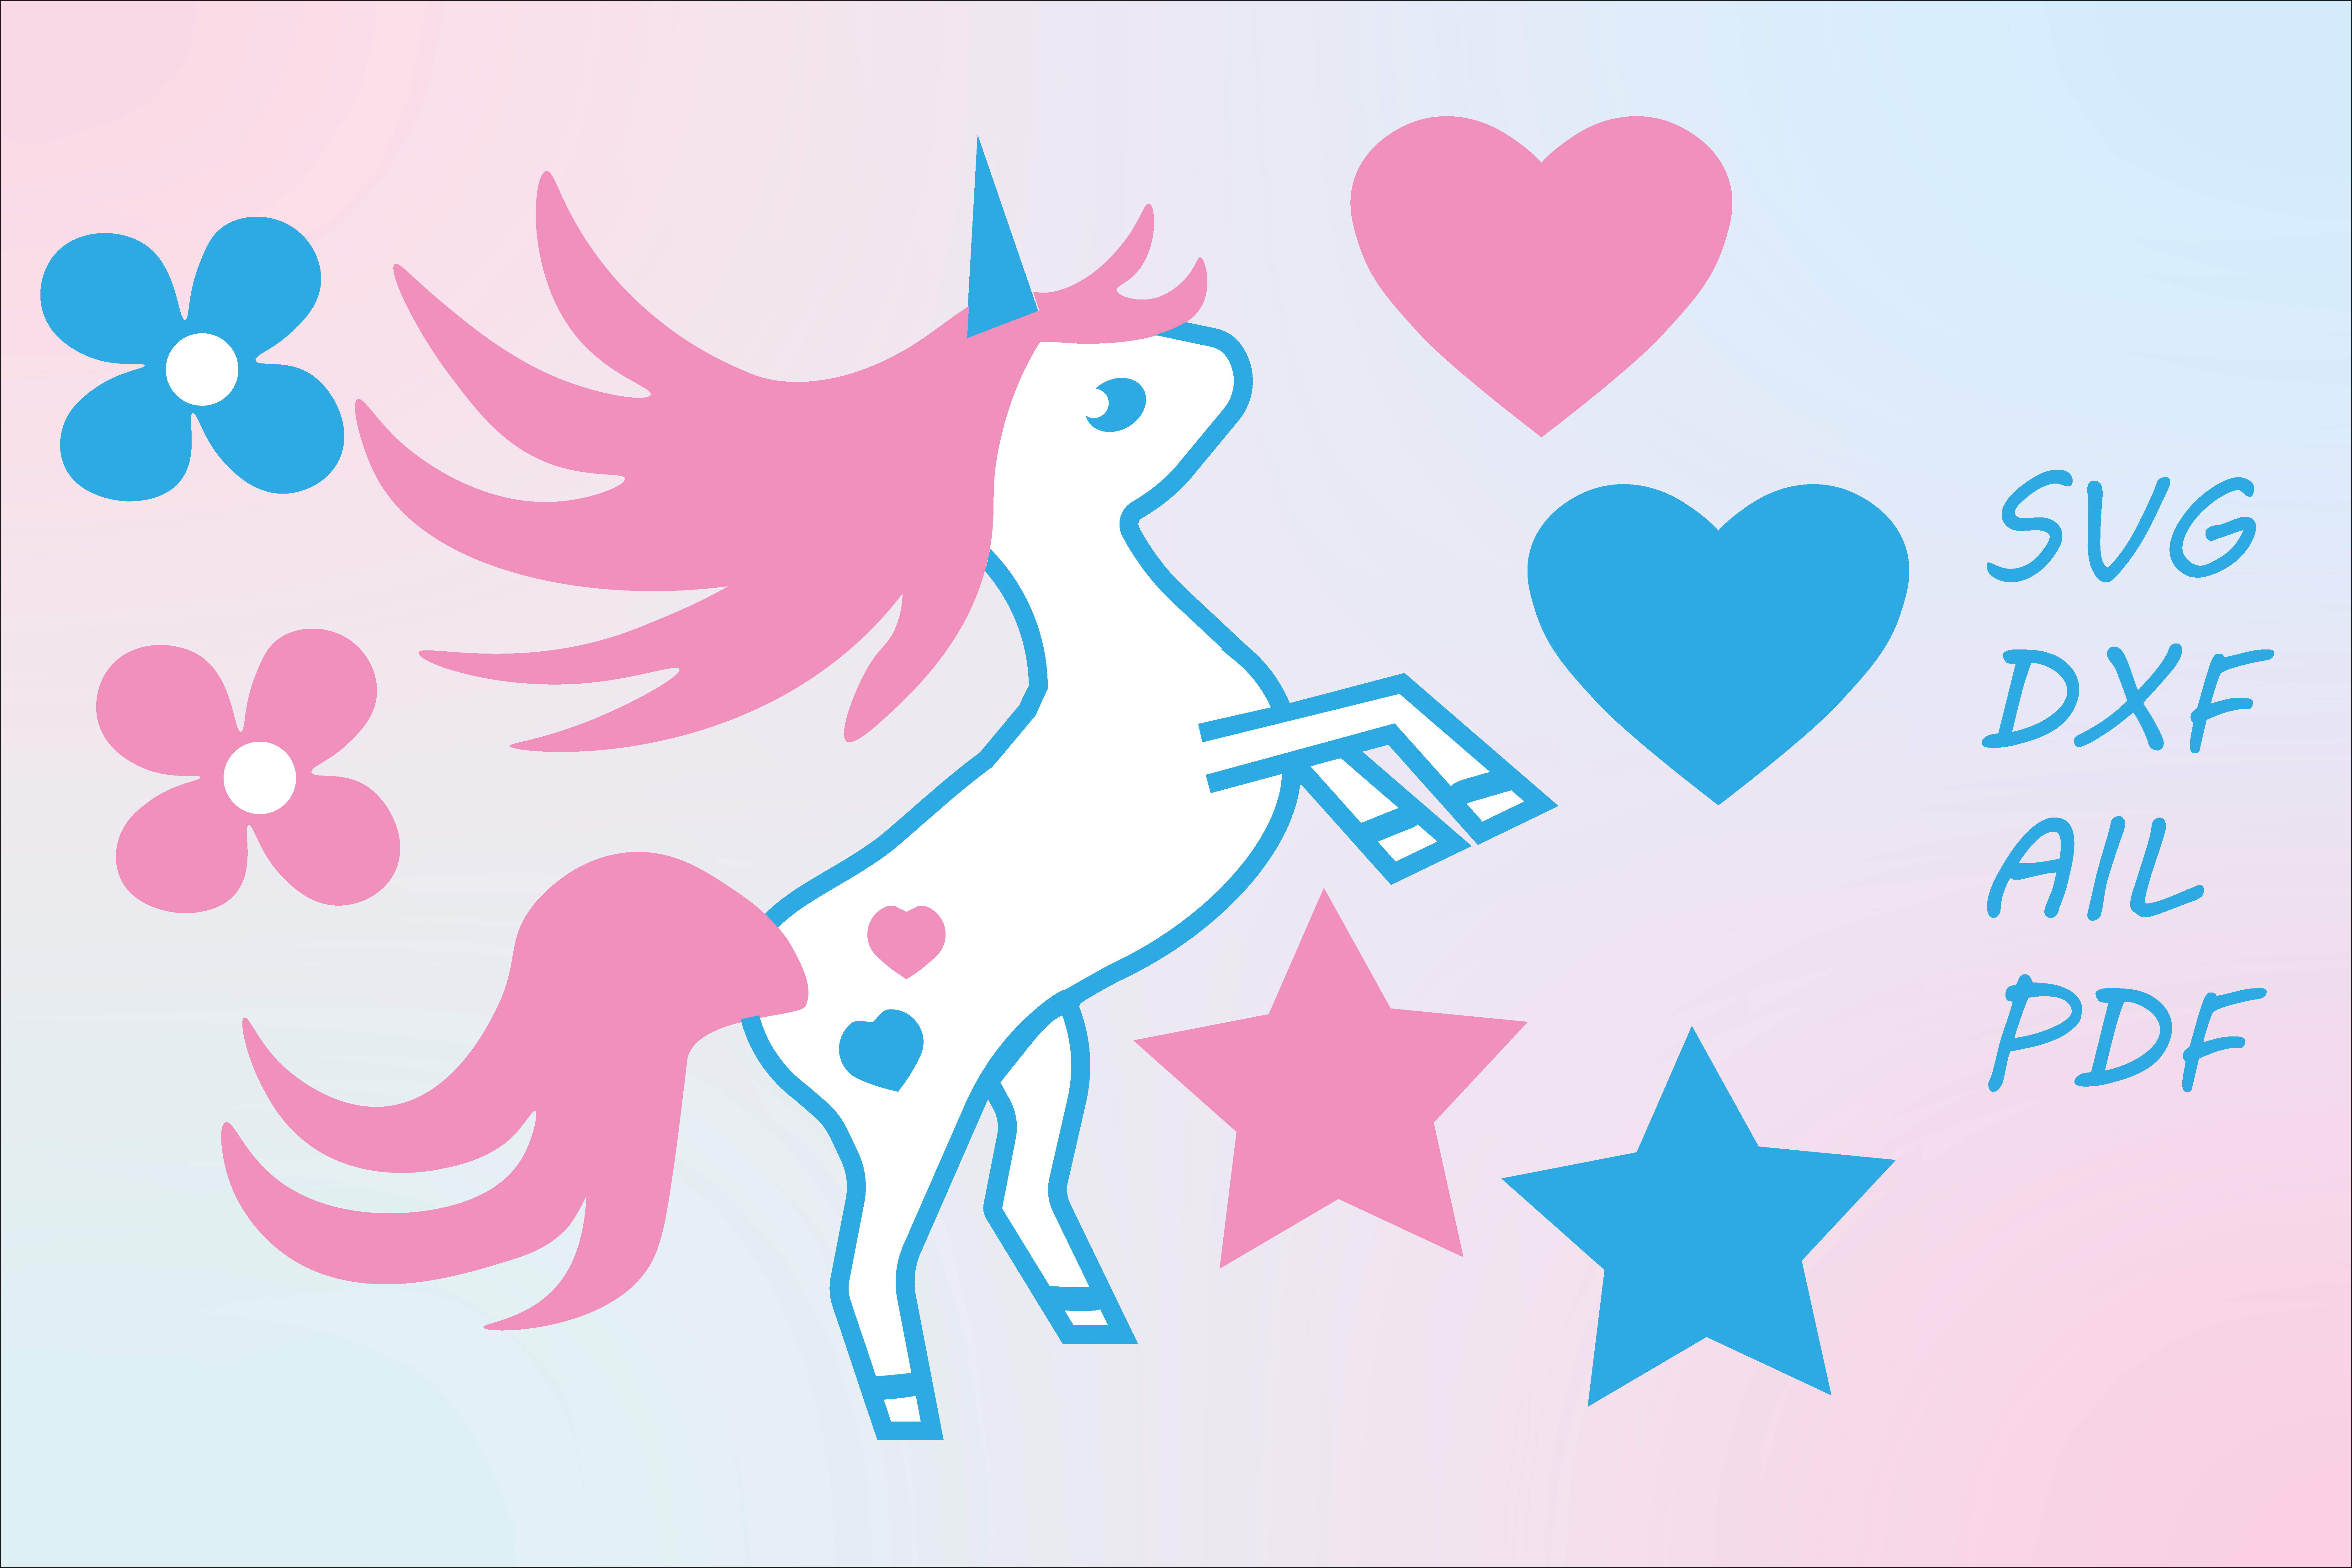 Download Free Unicorn Graphic By Tanja Dianova Creative Fabrica for Cricut Explore, Silhouette and other cutting machines.